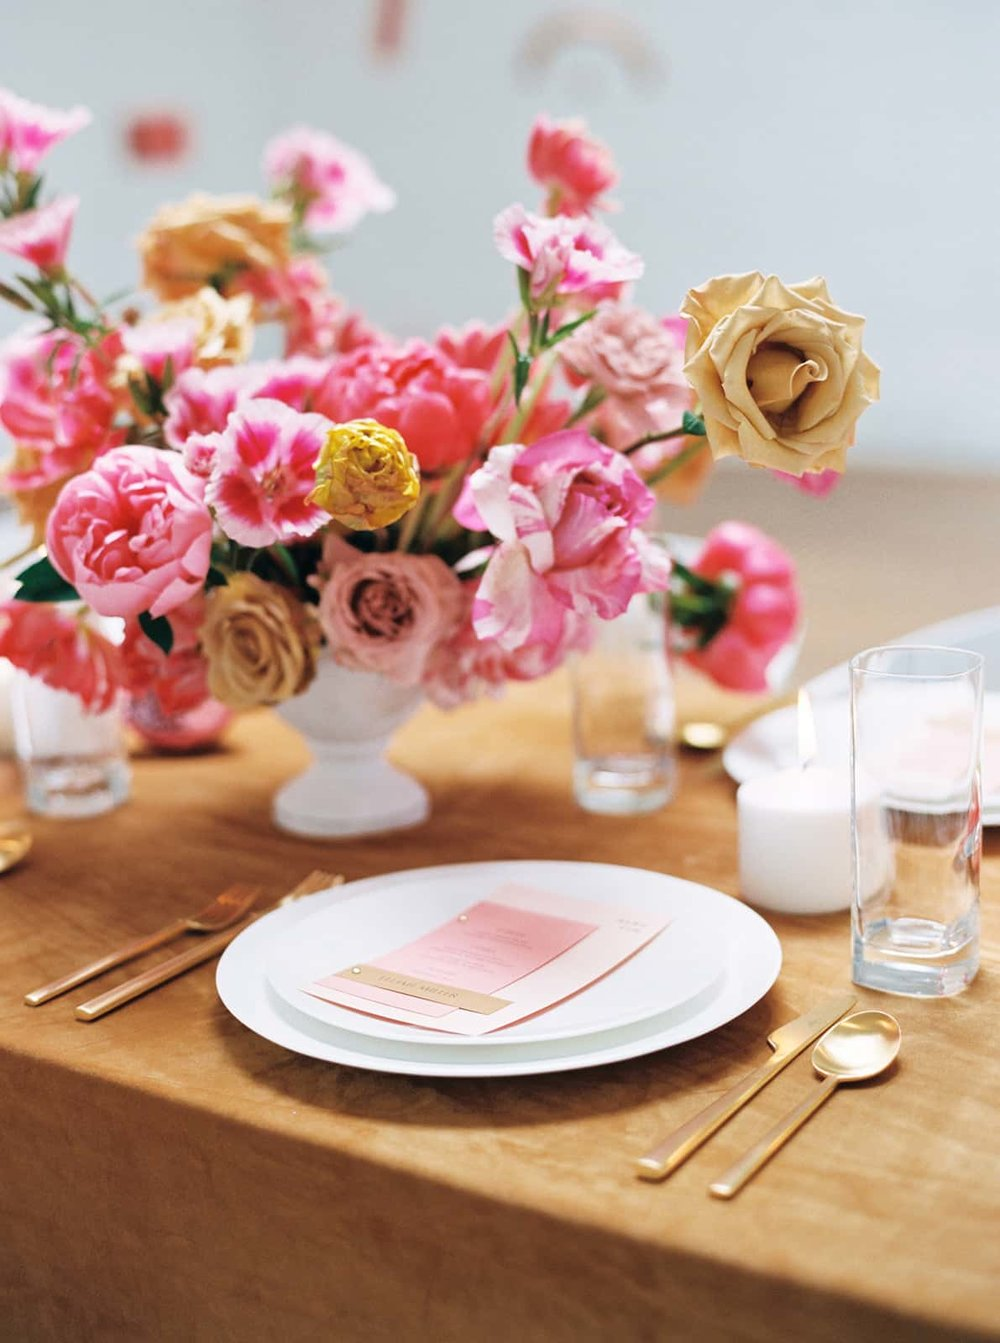 Flower arrangements and placesettings designed by Color Theory Collective